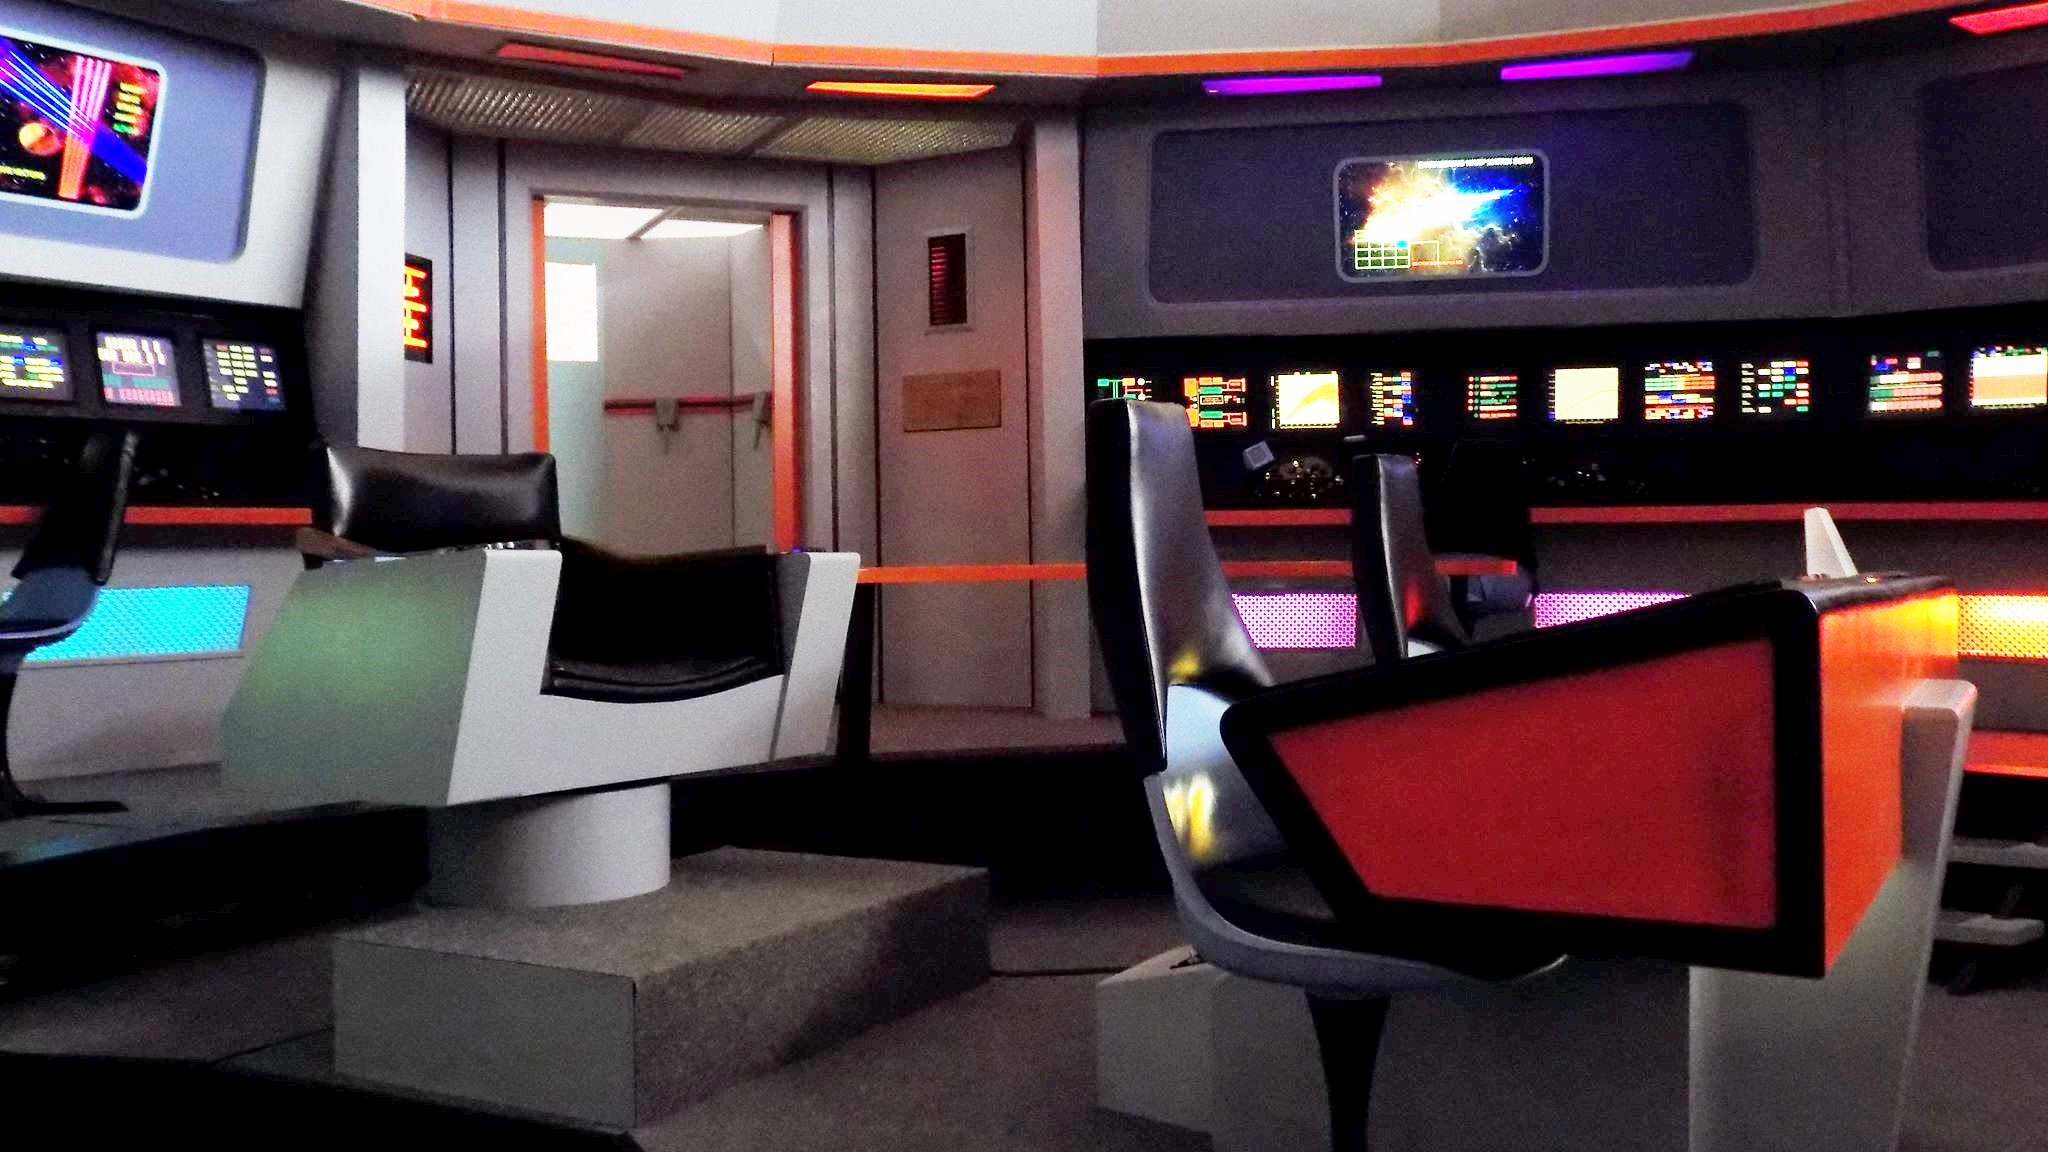 Star Trek Original Series Set Tours